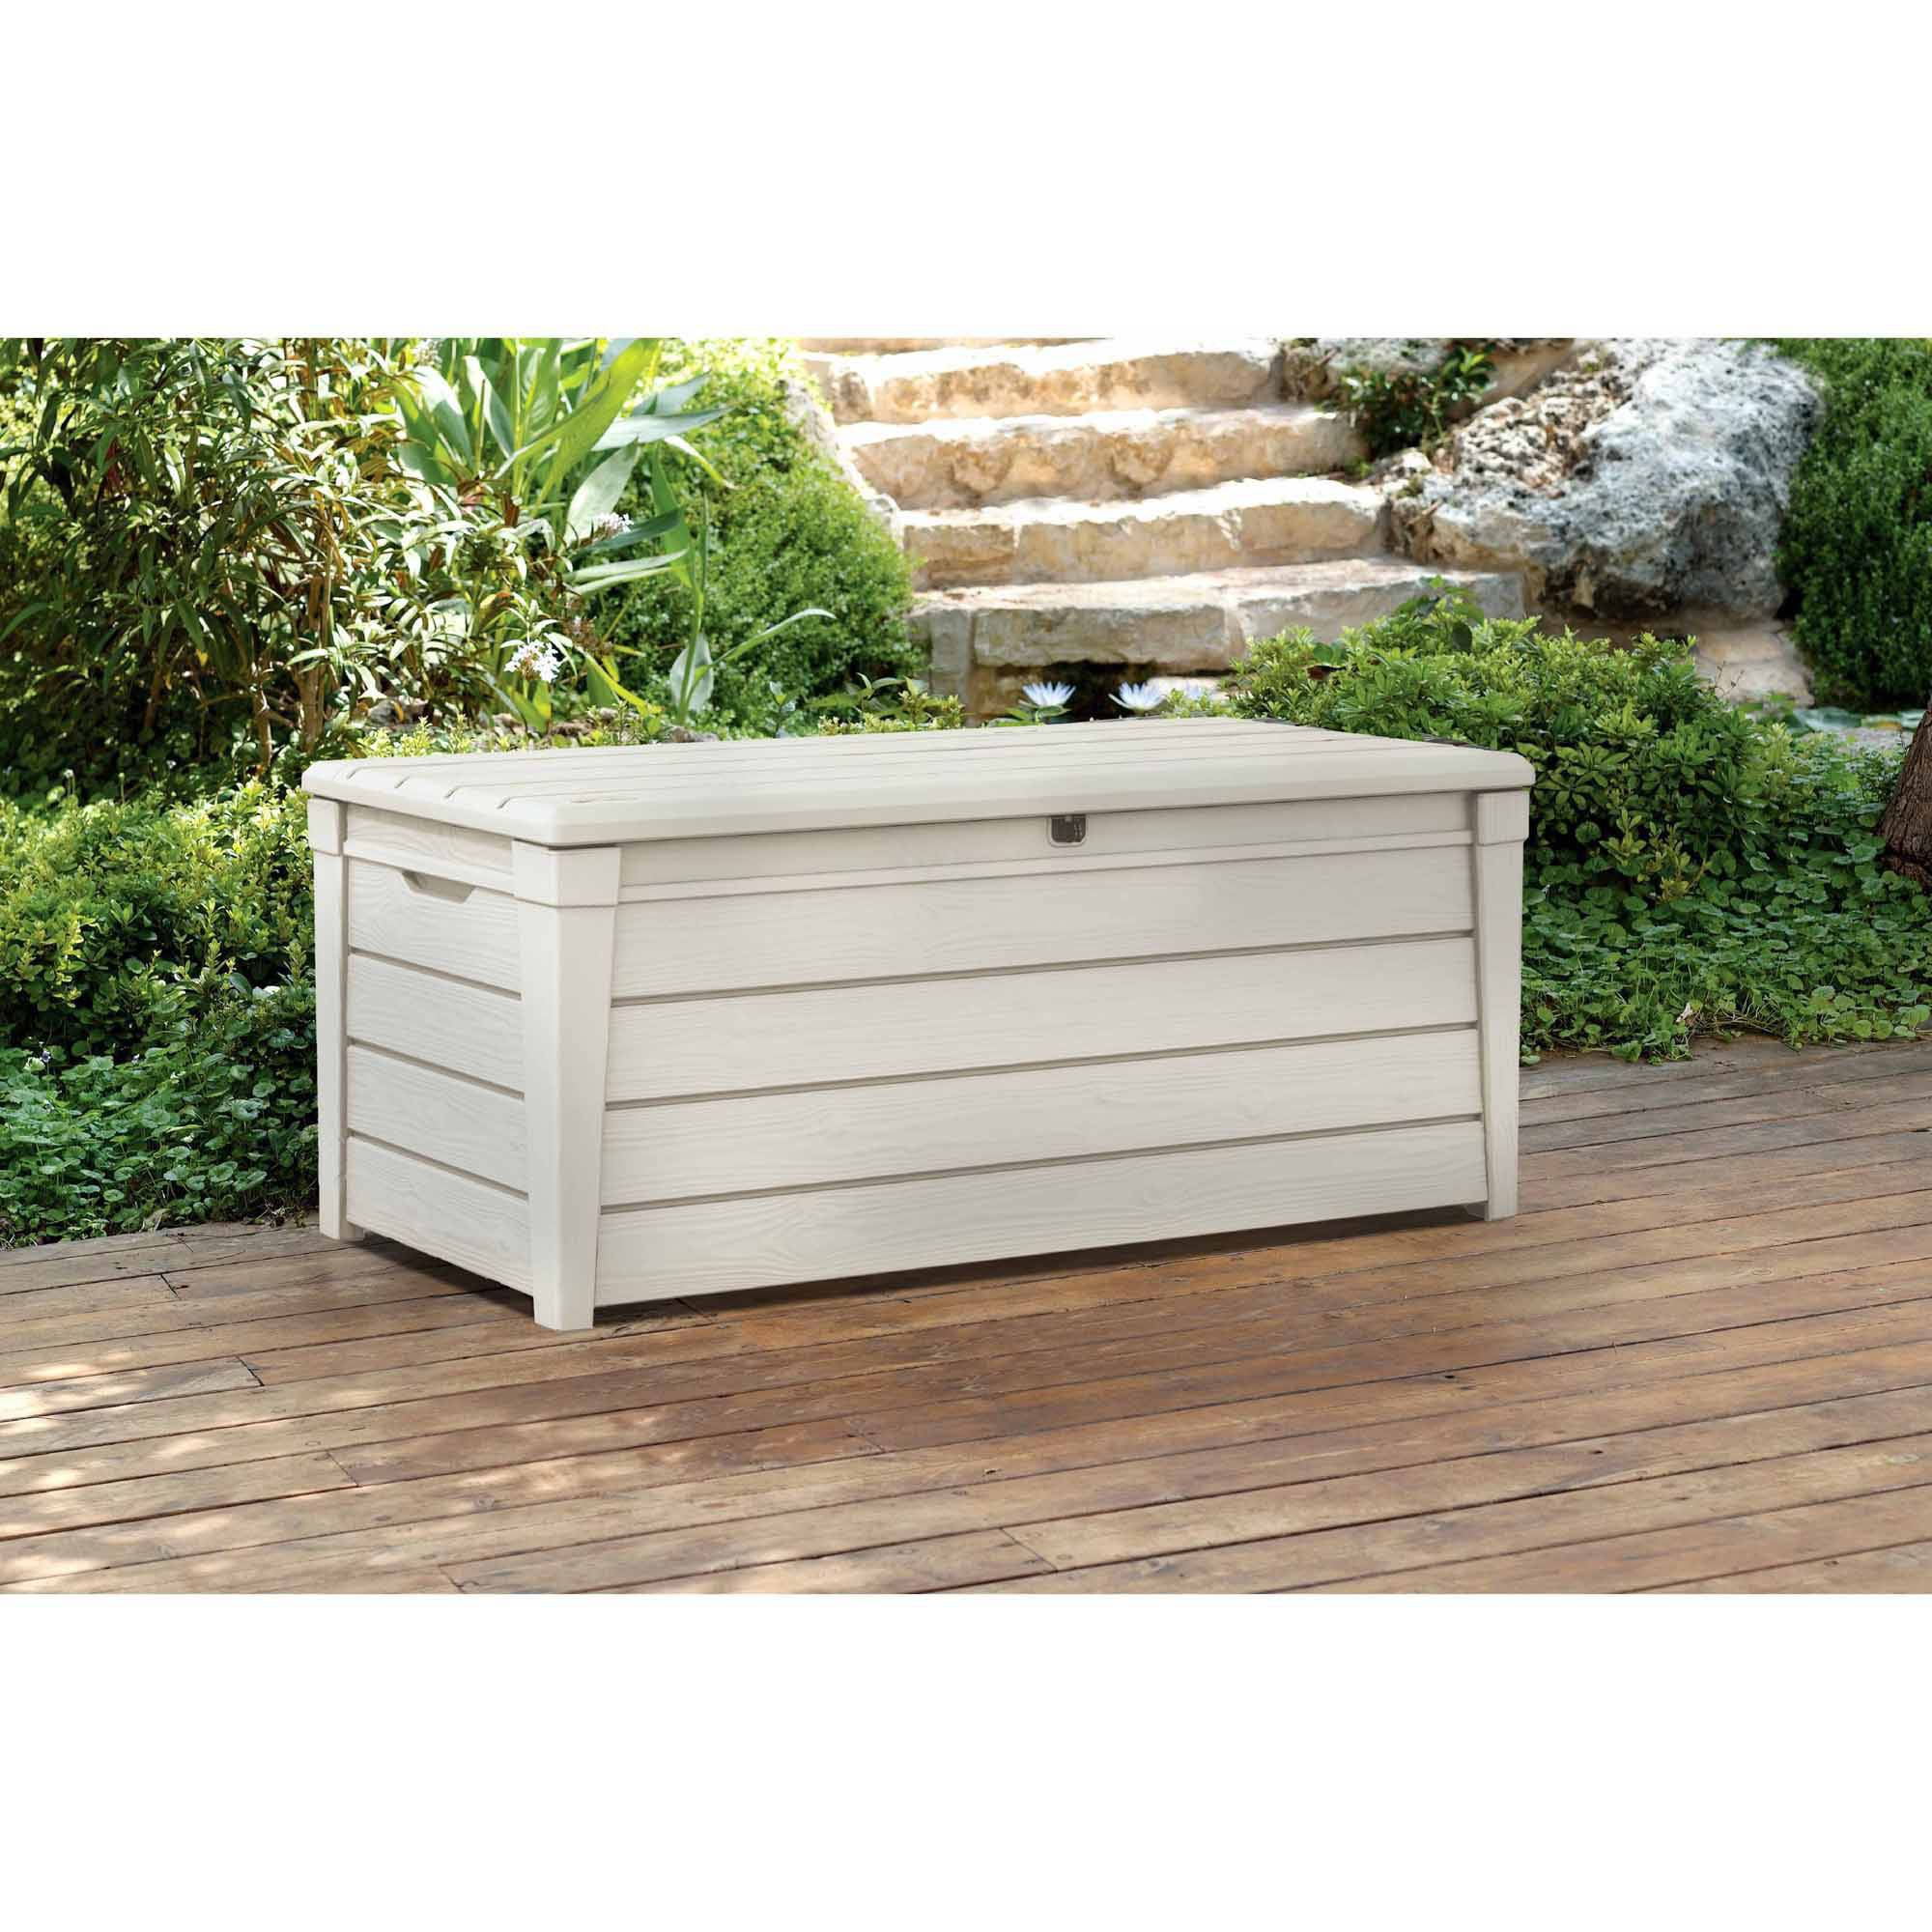 Bunnings Packing Boxes Keter Brightwood Outdoor Plastic Deck Storage Container